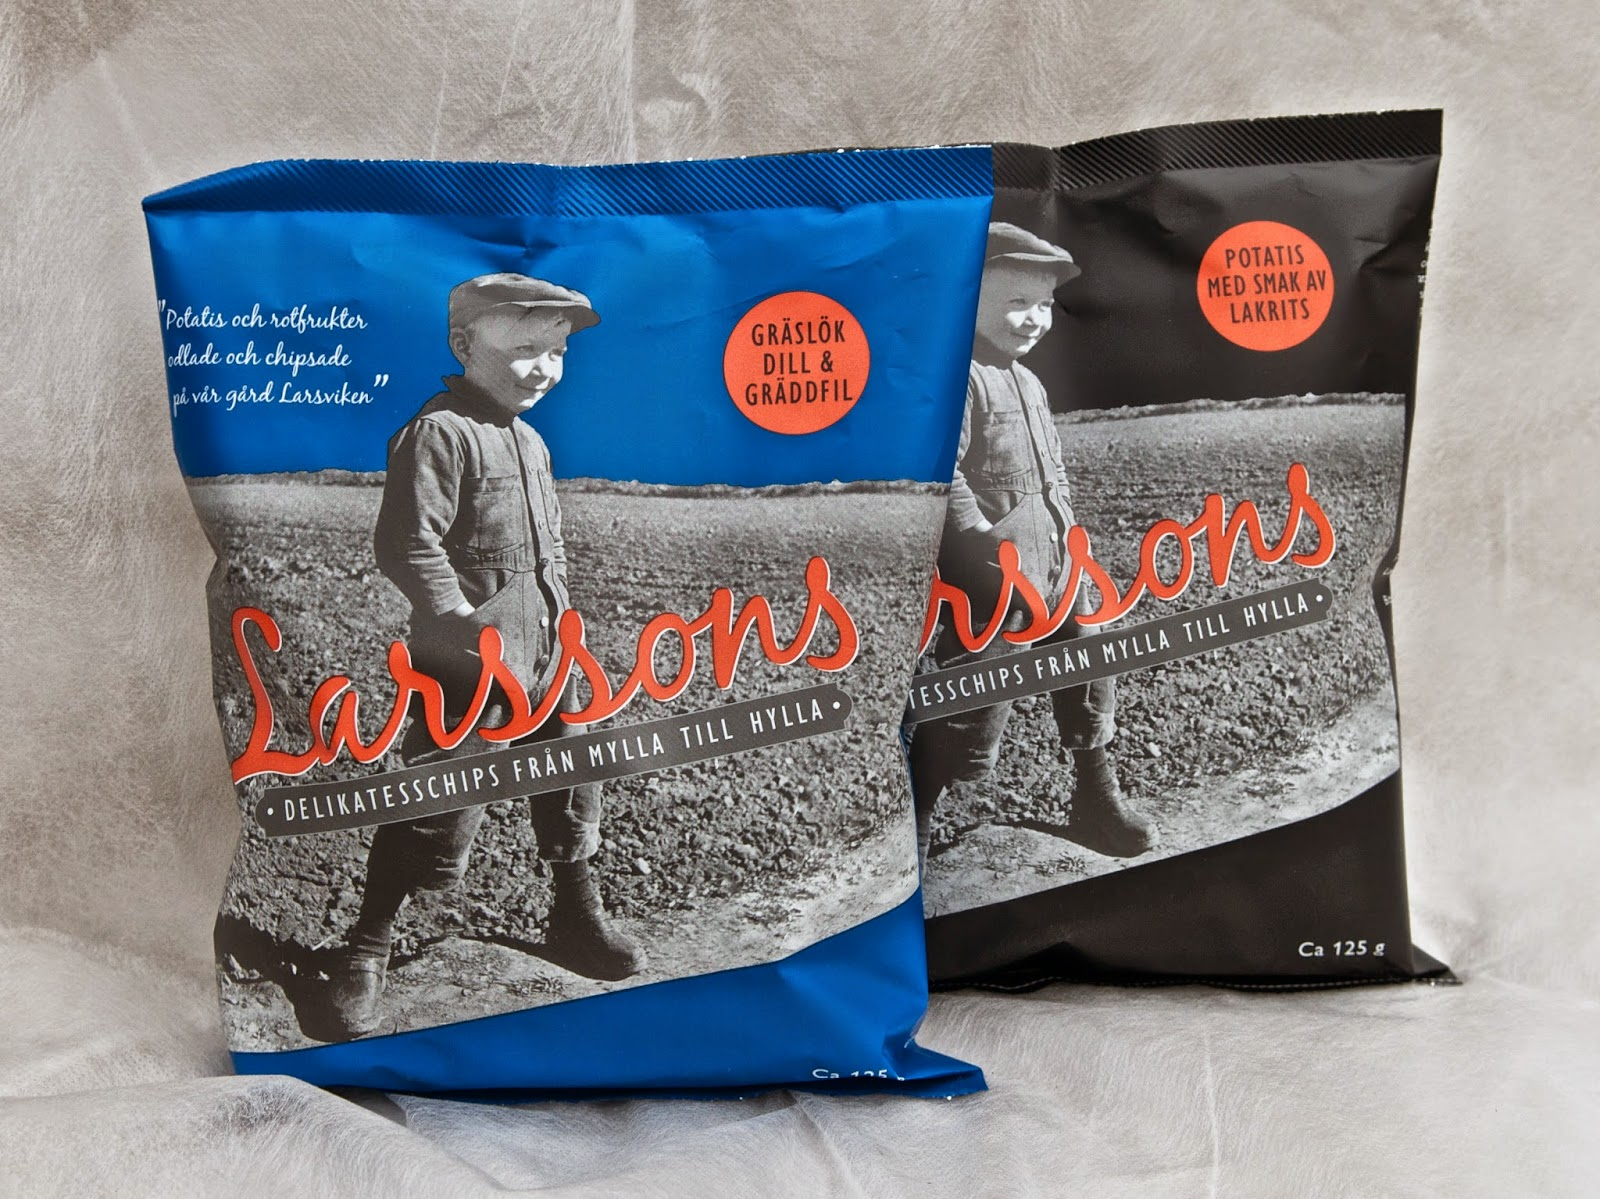 larsvikens chips